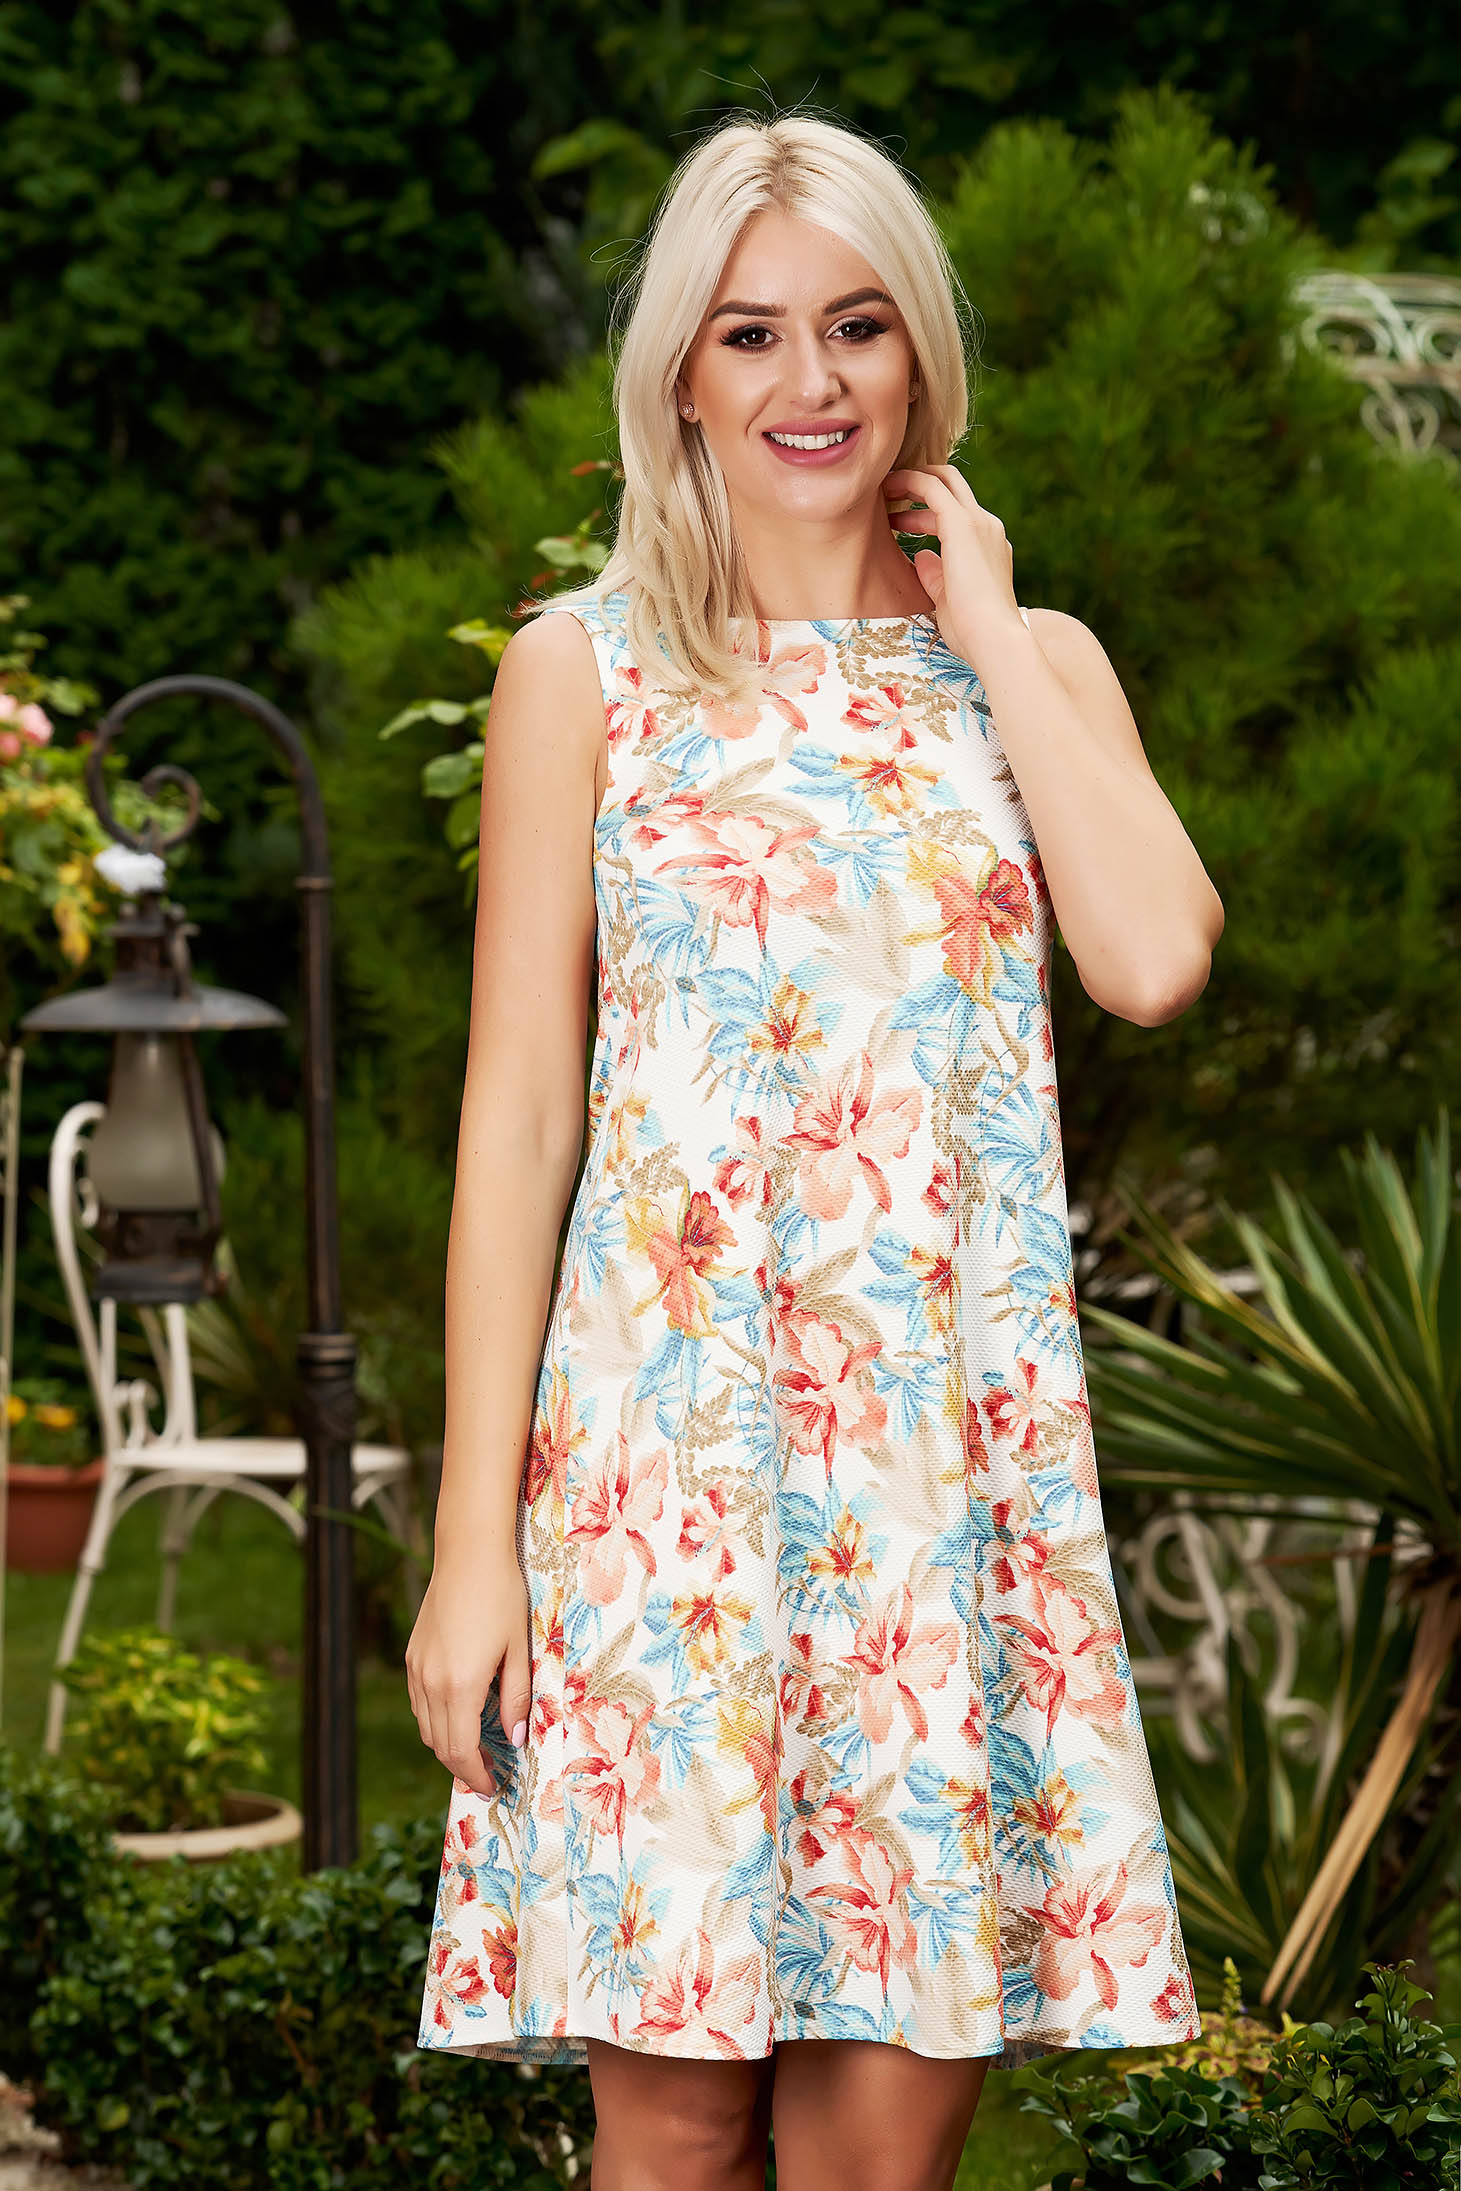 StarShinerS white dress daily short cut a-line with floral print sleeveless neckline